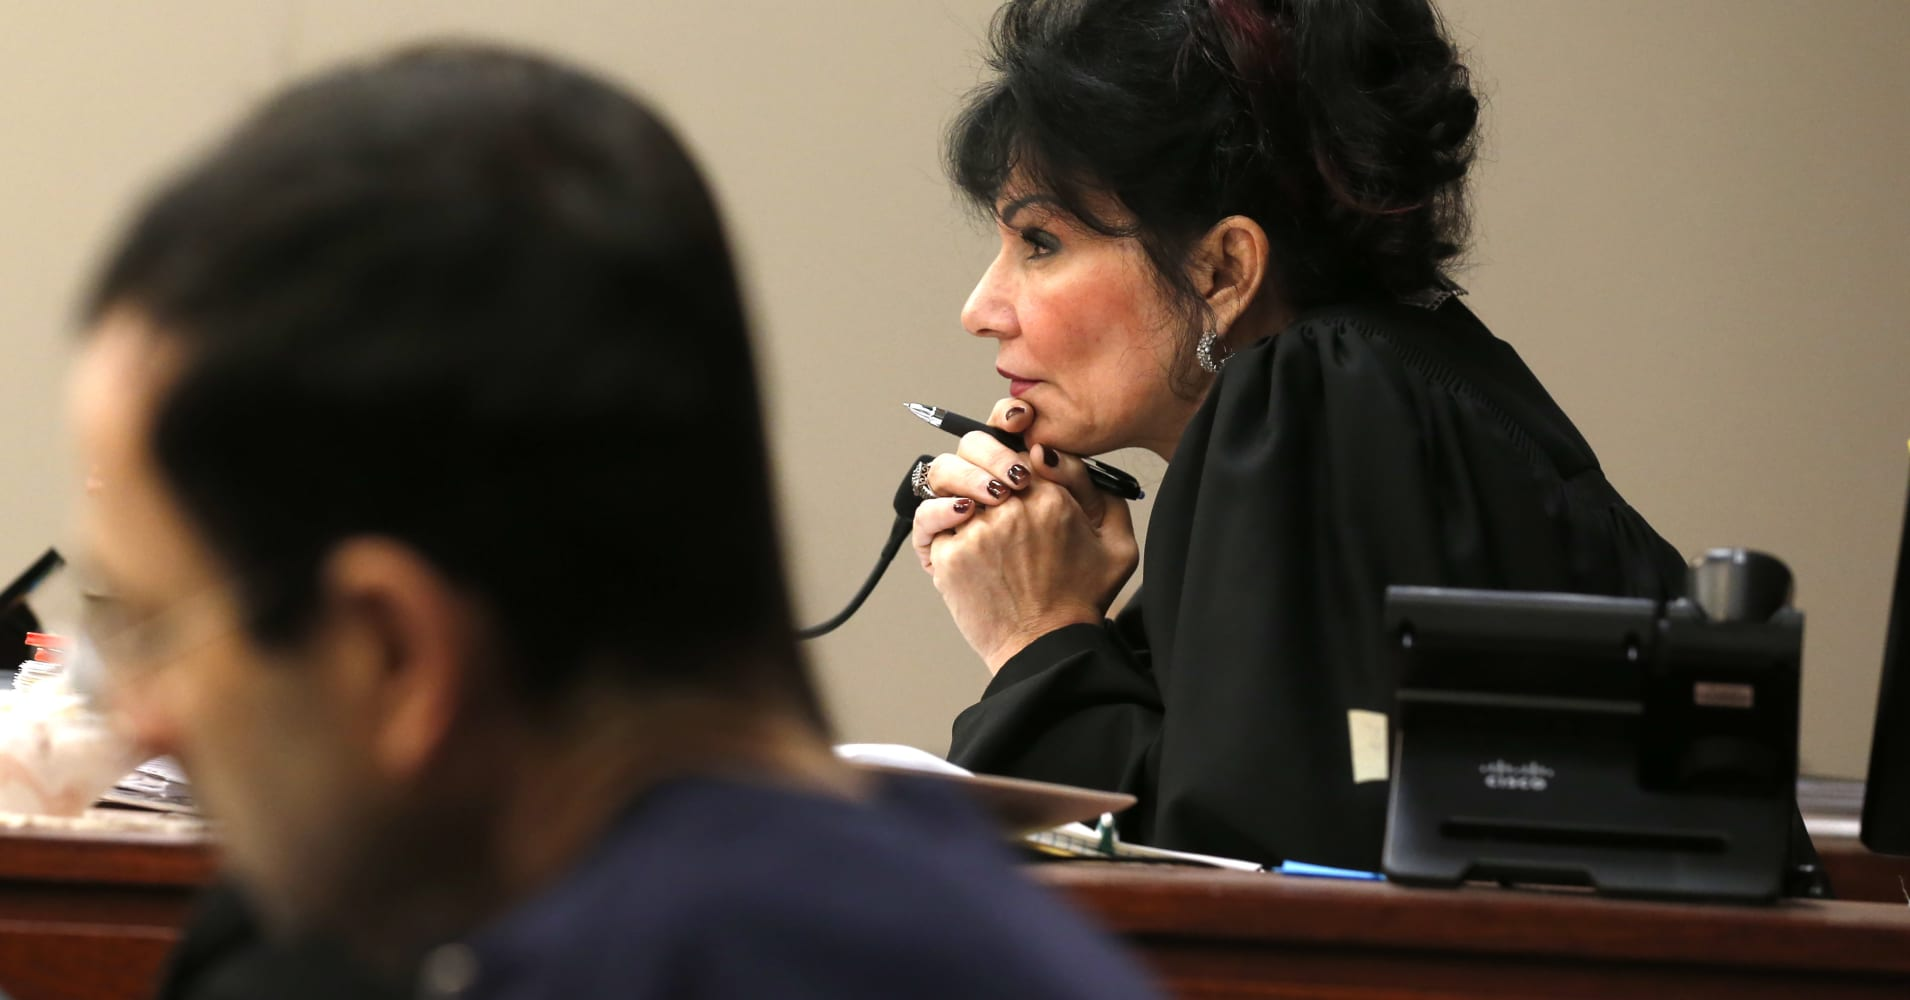 Judge Rosemarie Aquilina watches as Former Michigan State University and USA Gymnastics doctor Larry Nassar listens to impact statements during the sentencing phase in Ingham County Circuit Court on January 24, 2018 in Lansing, Michigan. JEFF KOWALSKY/AFP/Getty Images